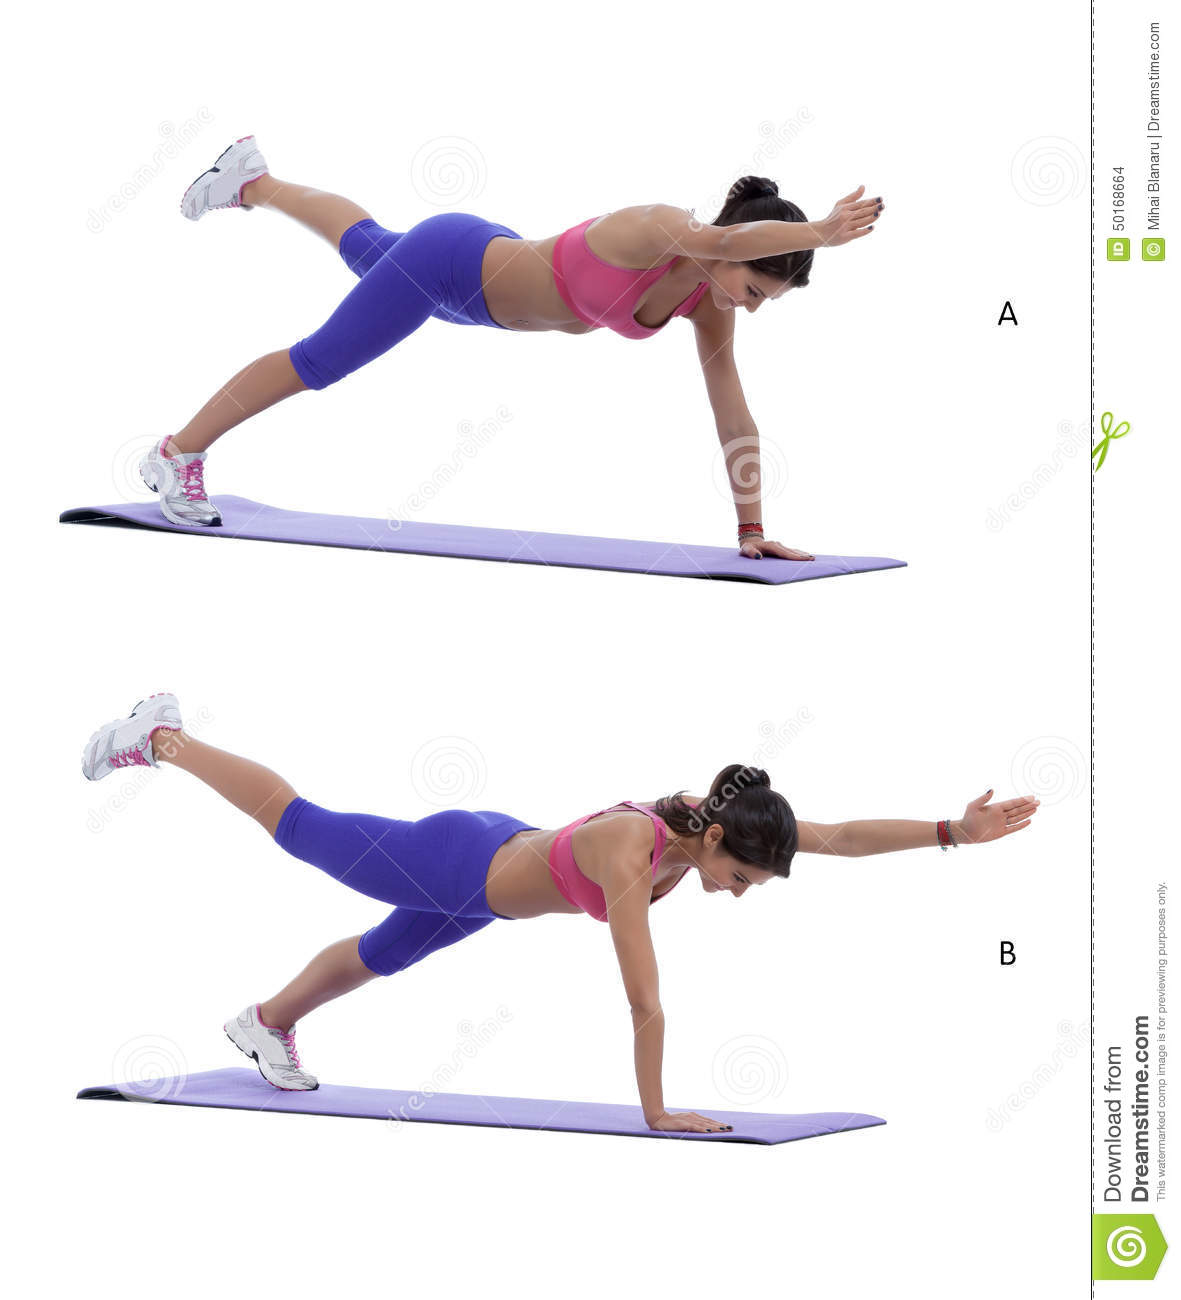 Does the Side Plank Exercise Strengthen the Back